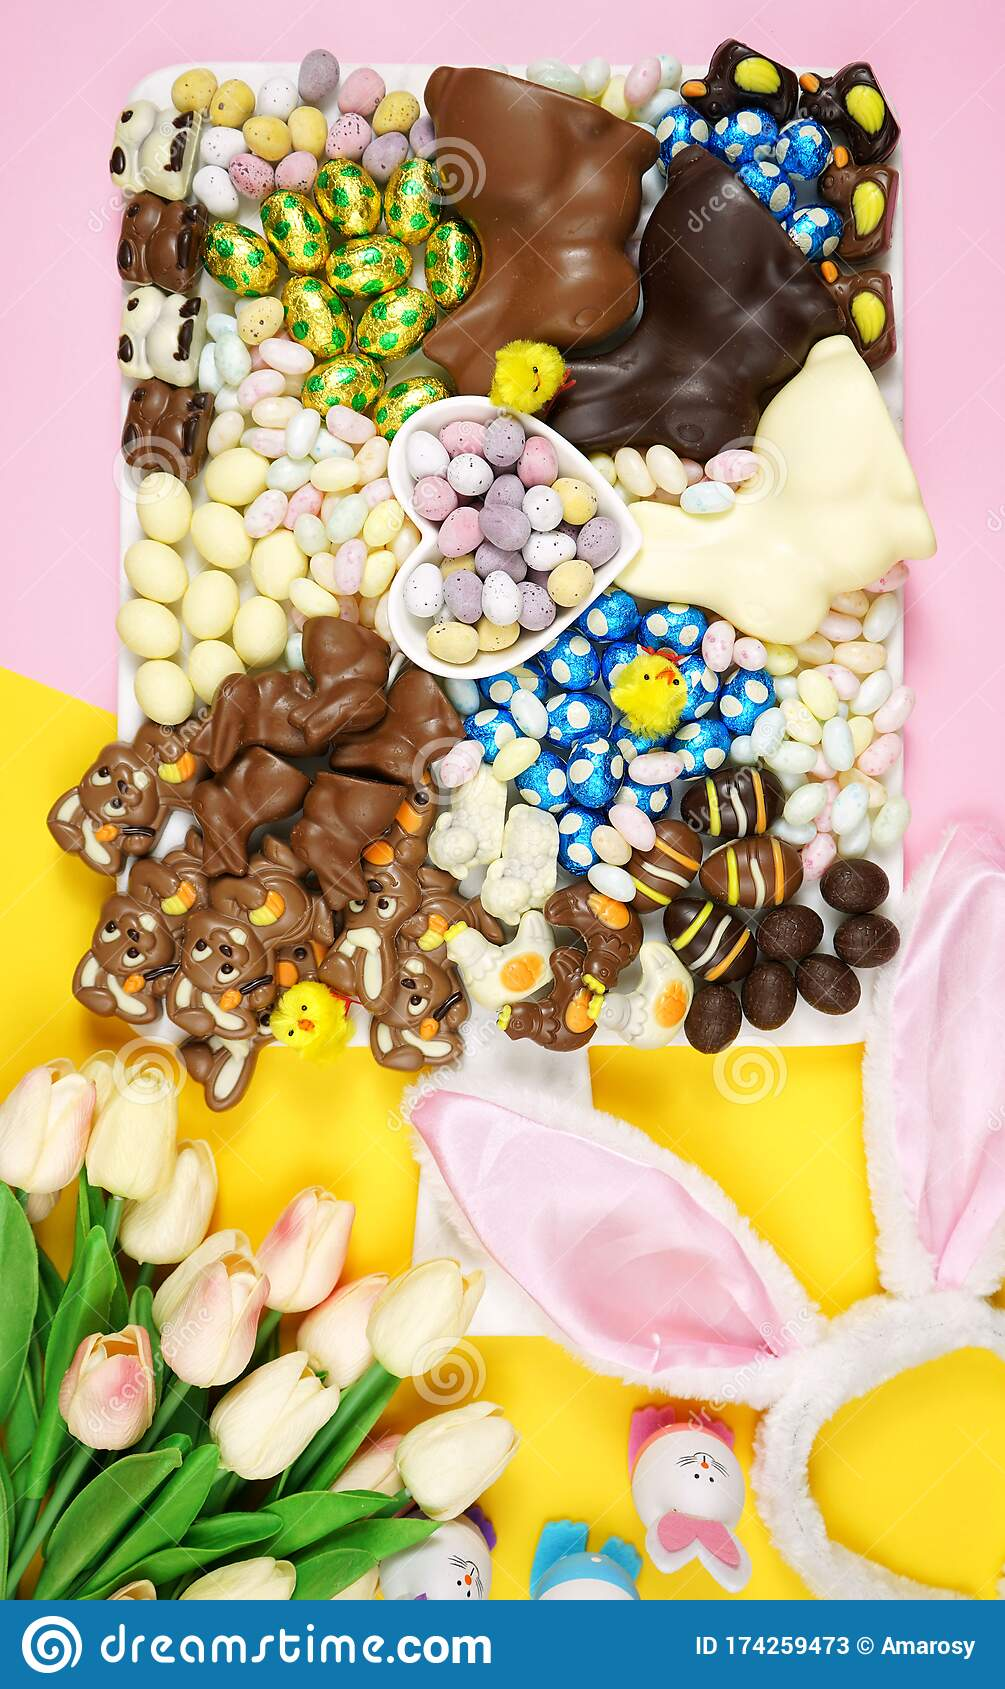 Happy Easter Chocolate And Candy Eggs And Bunnies Grazing Platter Stock Image Image Of Chocolate Flowers 174259473